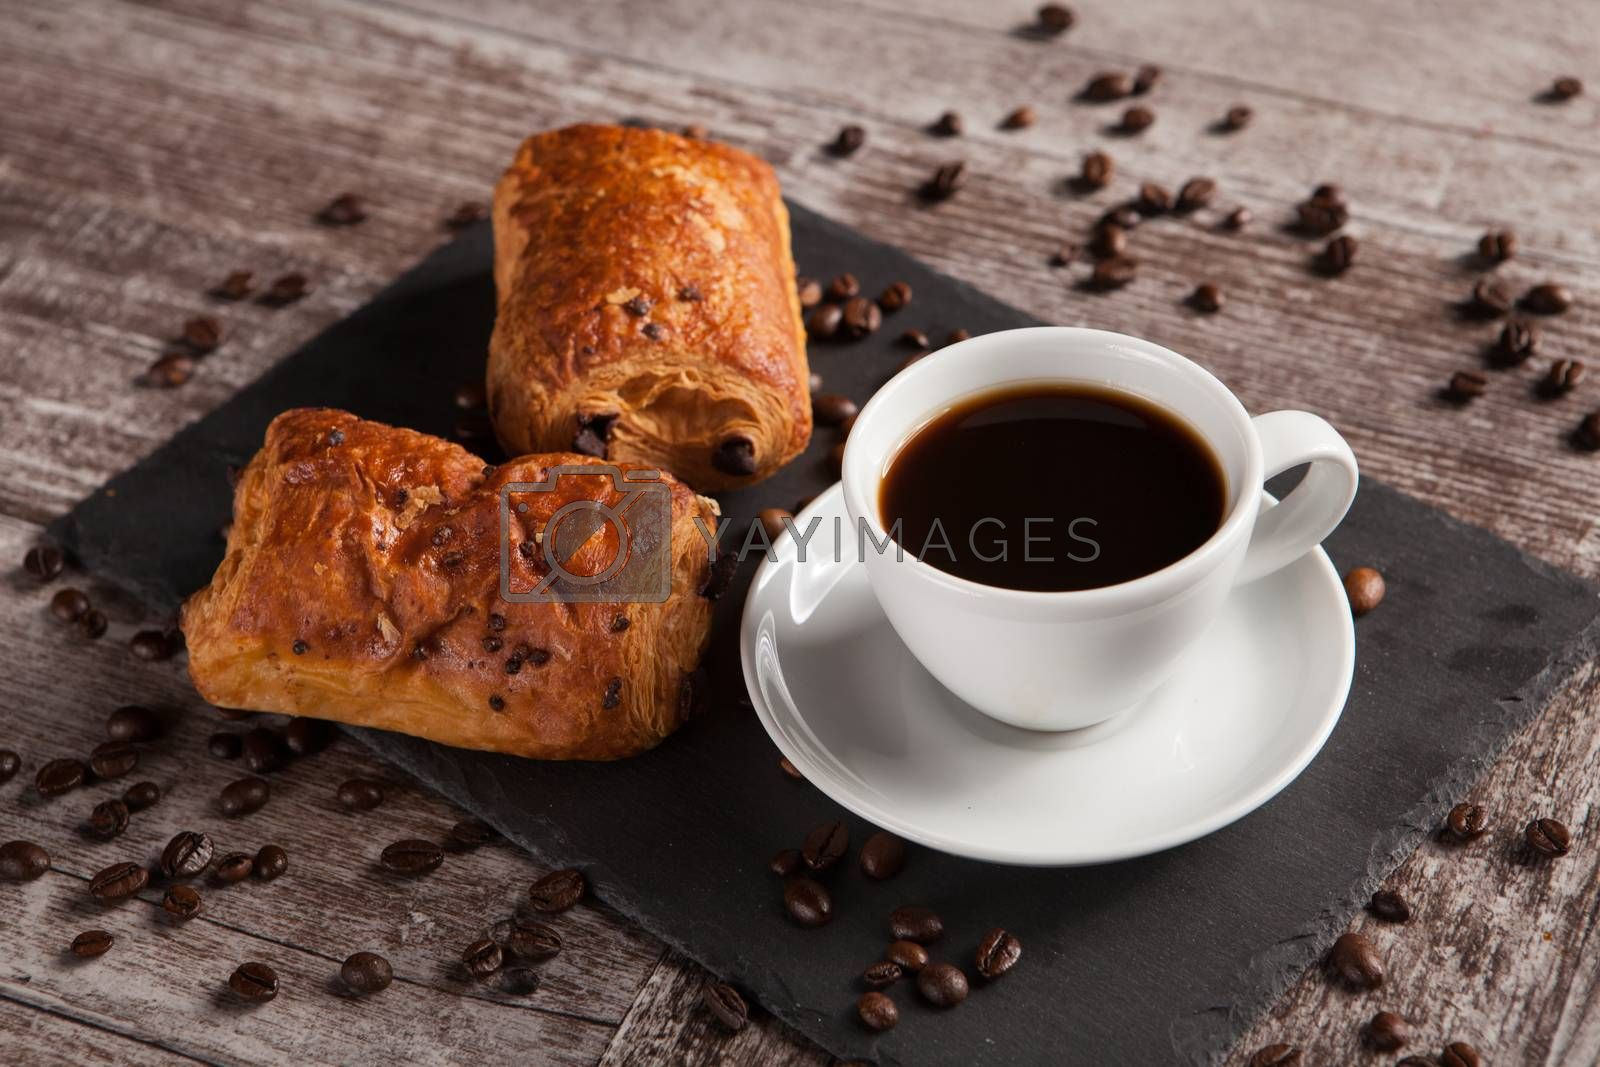 Sweet Croissants with almonds, hot coffee and spreaded coffee be by DCStudio